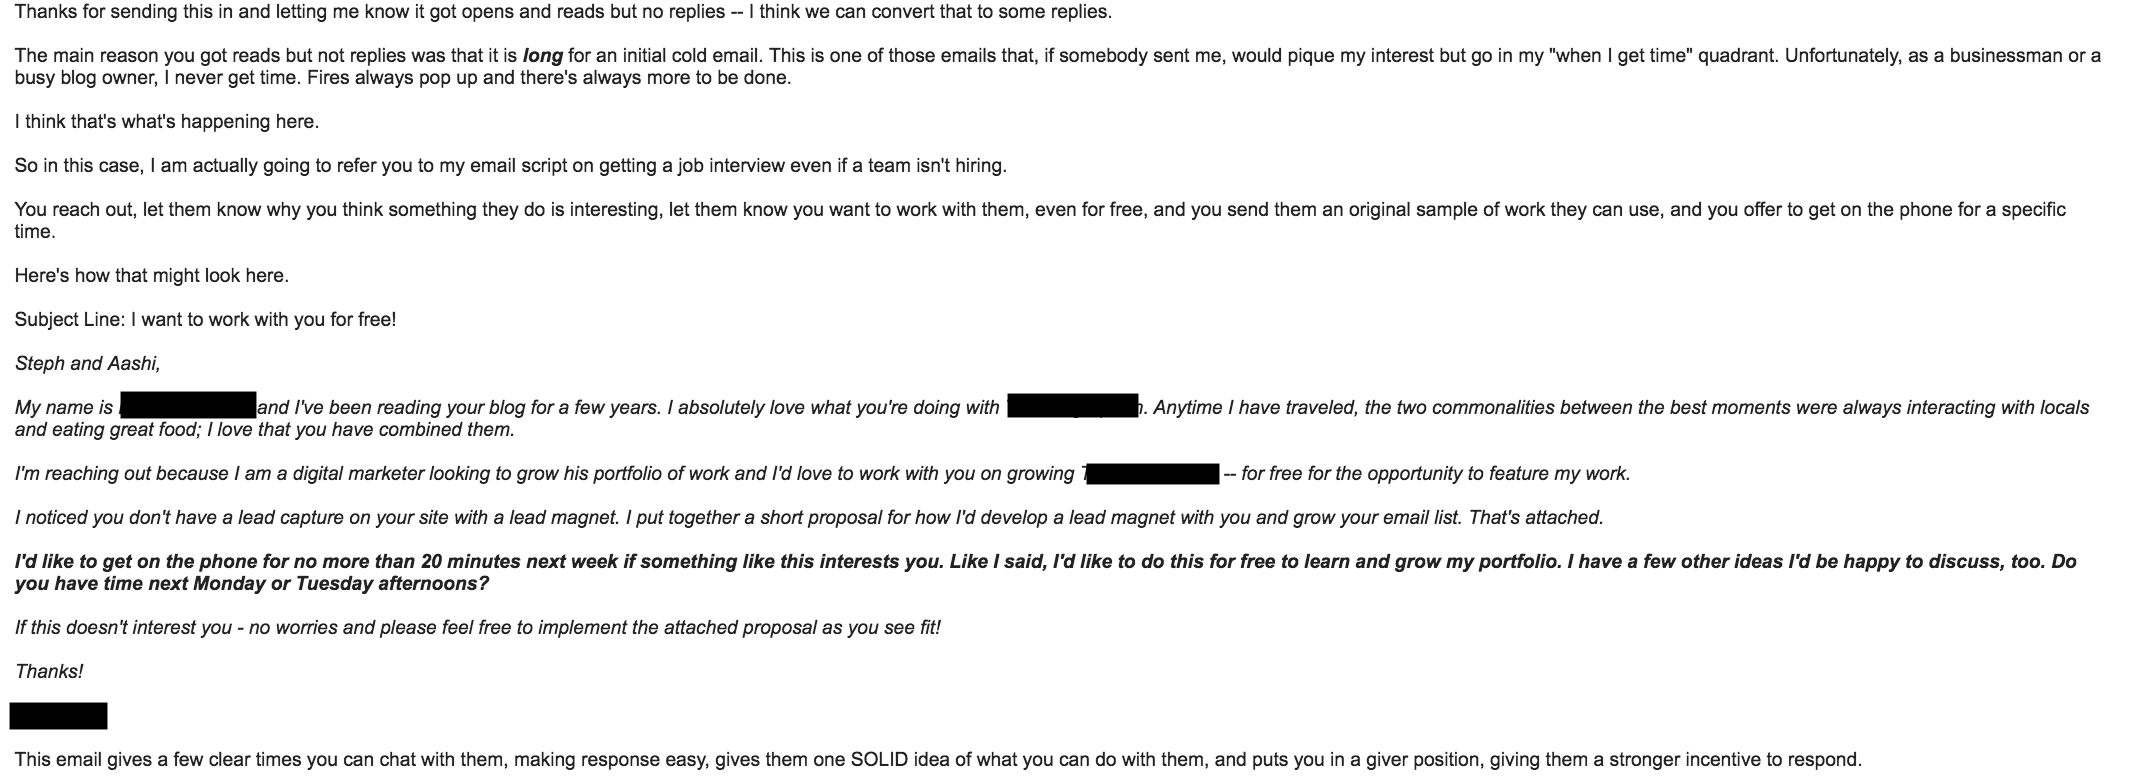 picture Heres an excerpt from the email